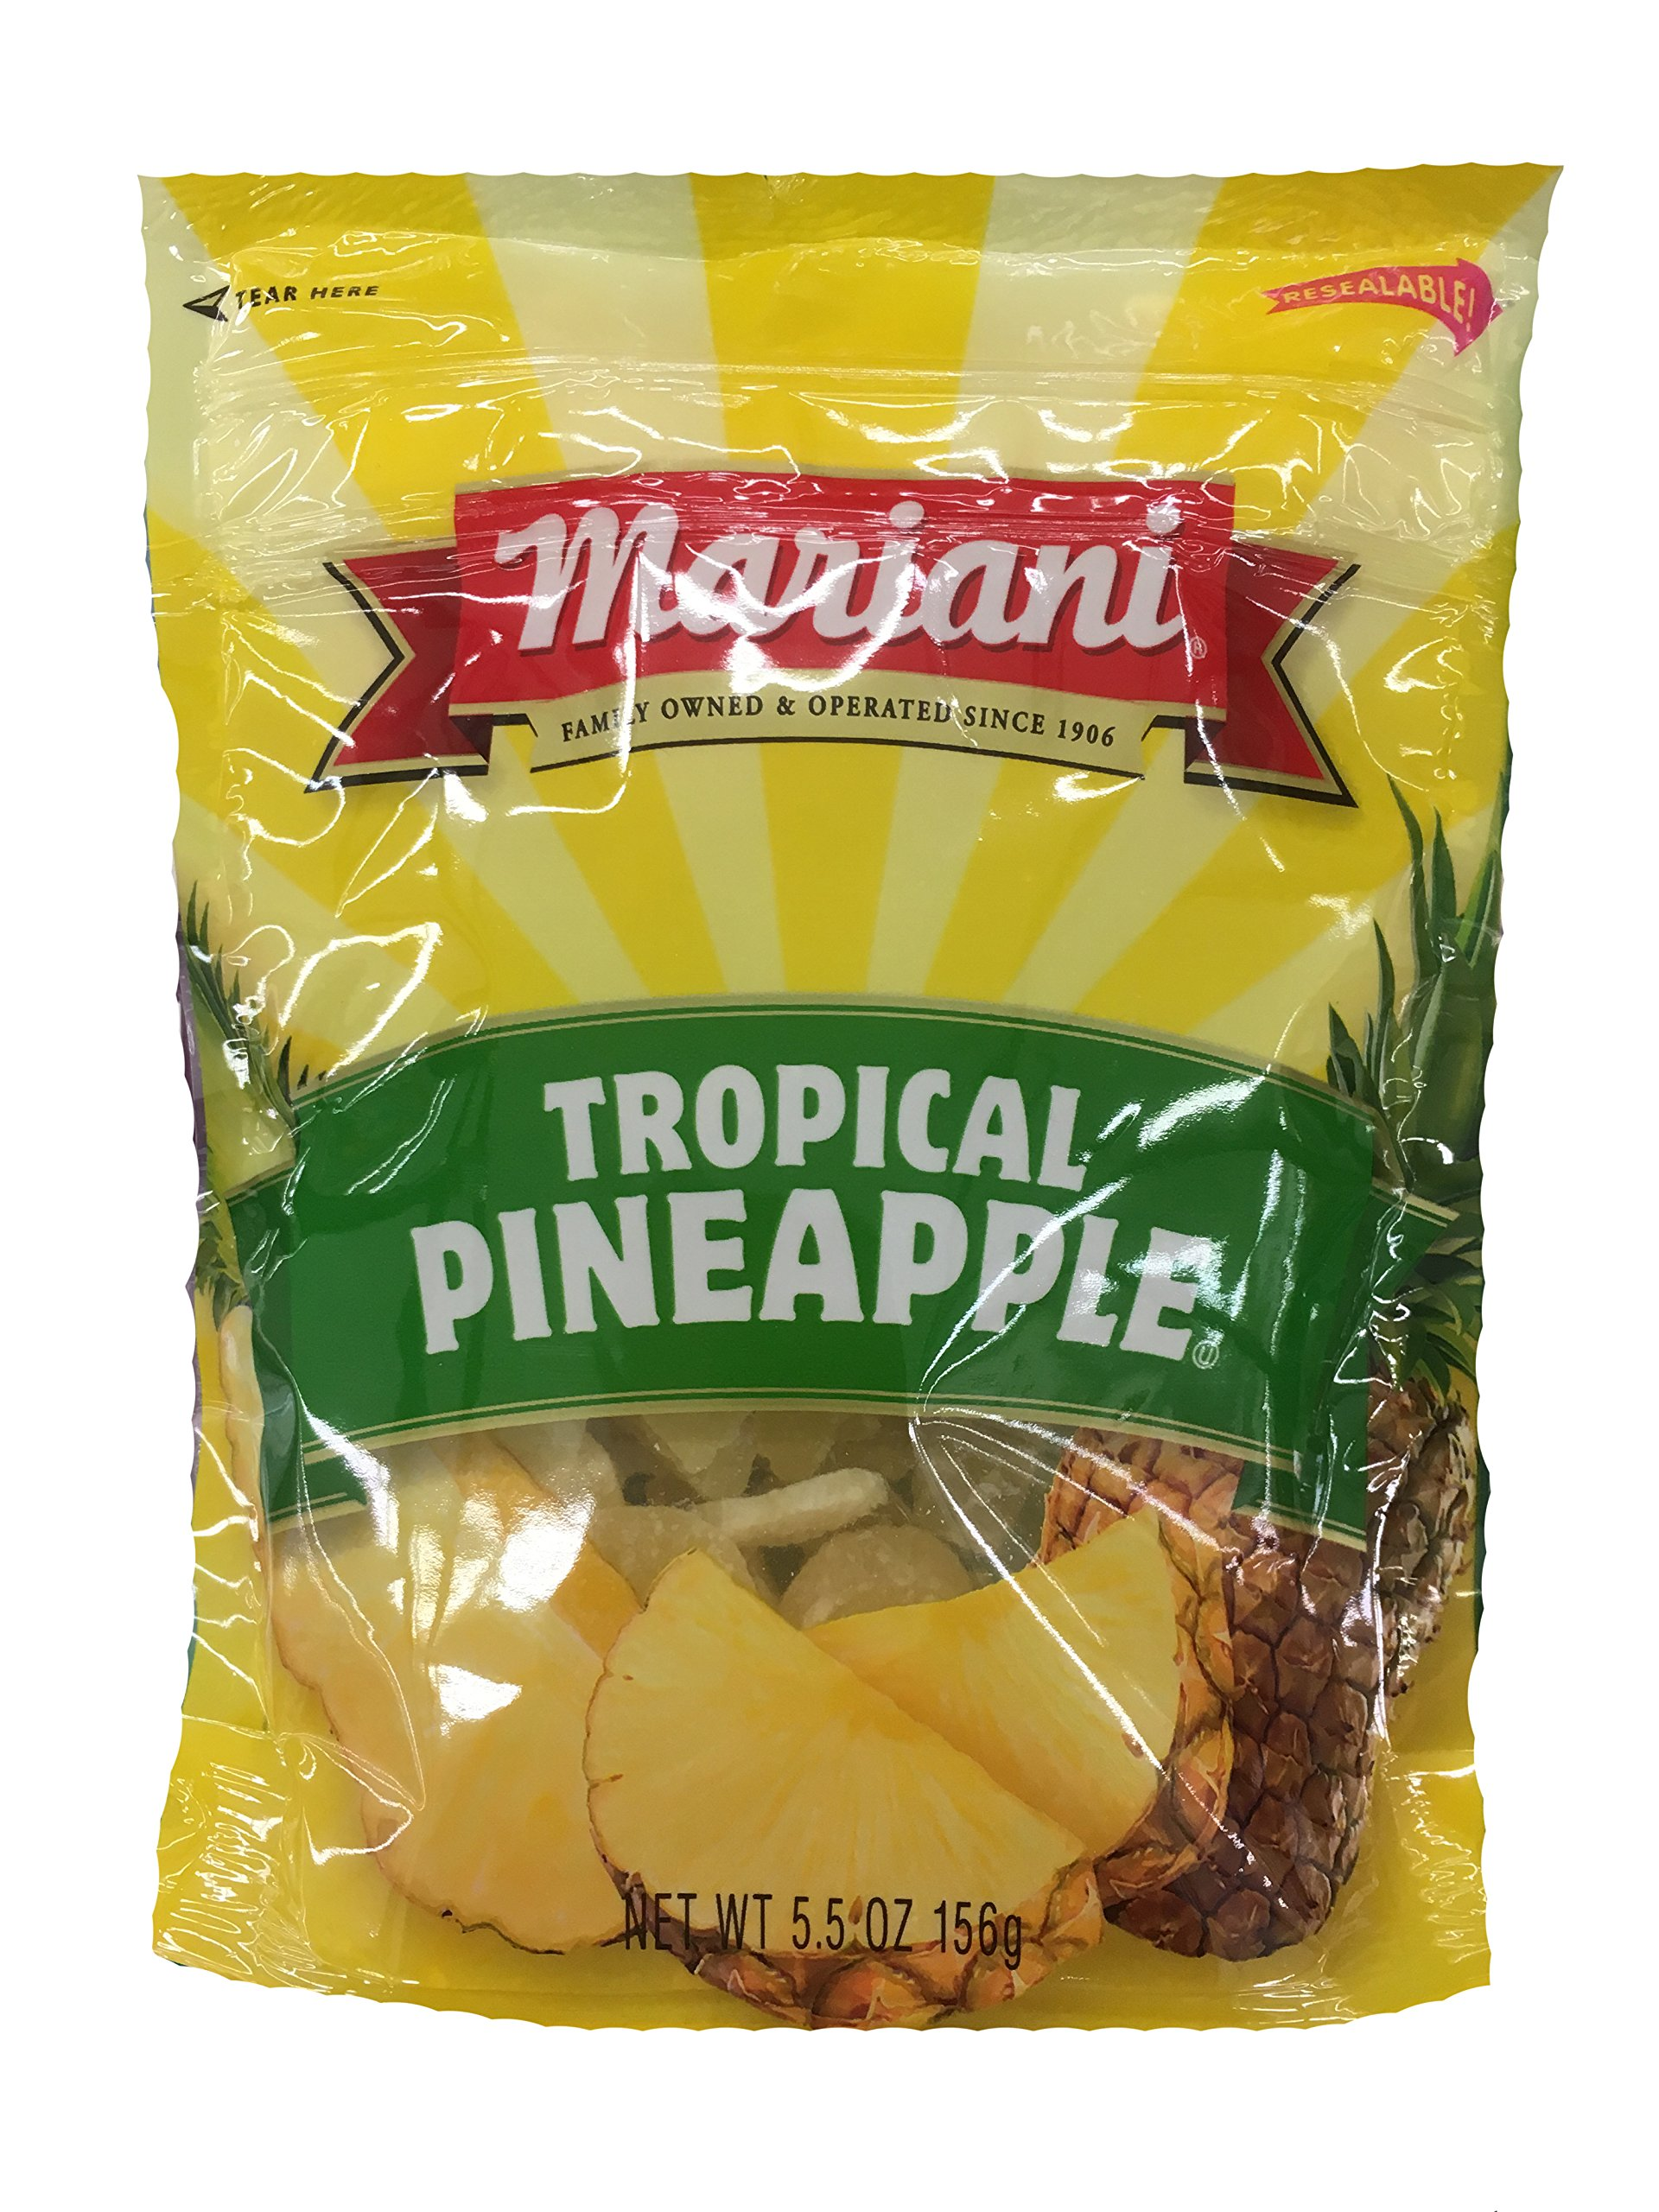 Mariani Tropical Pineapple 5.5oz (Pack of 3) by Mariani